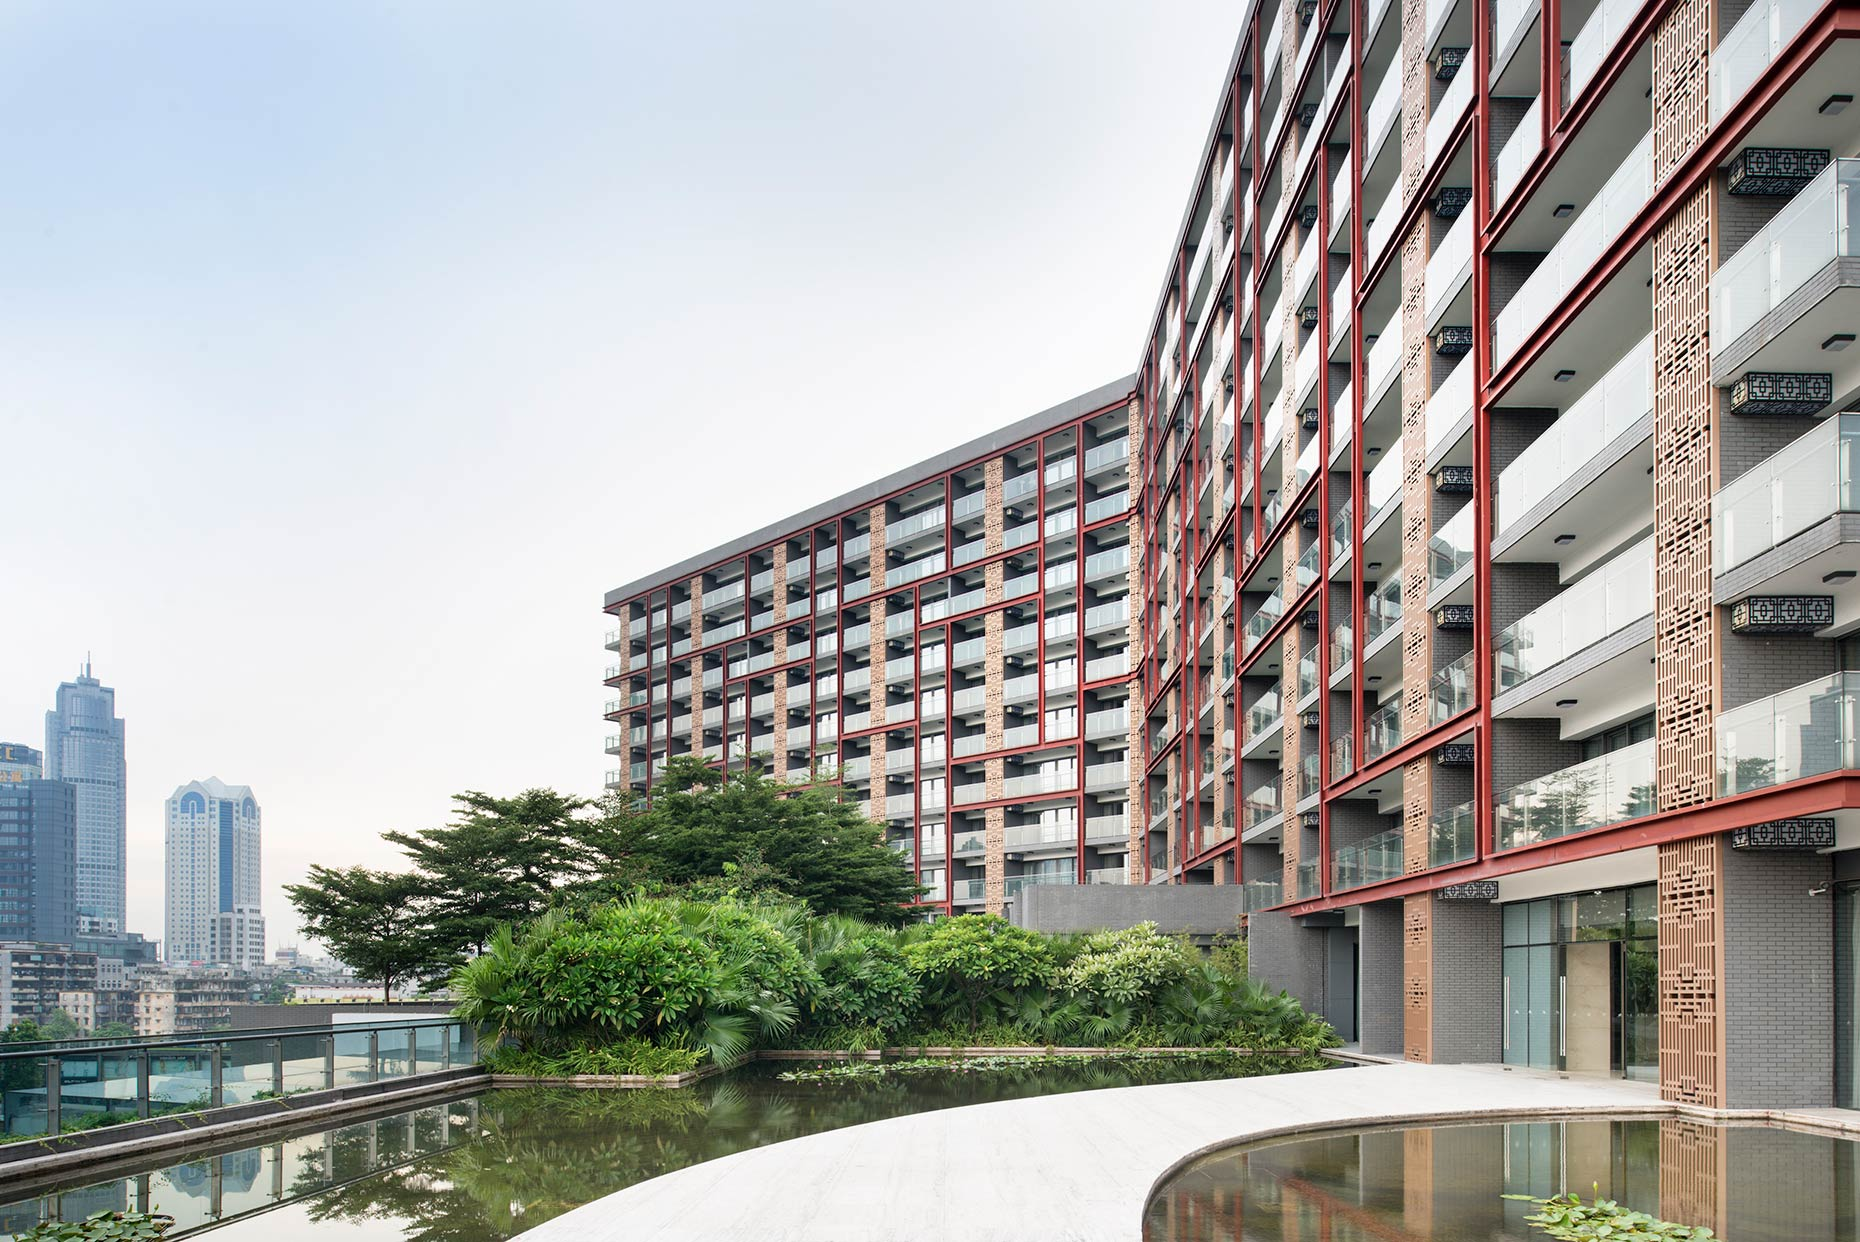 Commercial Architecture | Xintiandi Shui On | Foshan, China | Stefen Chow